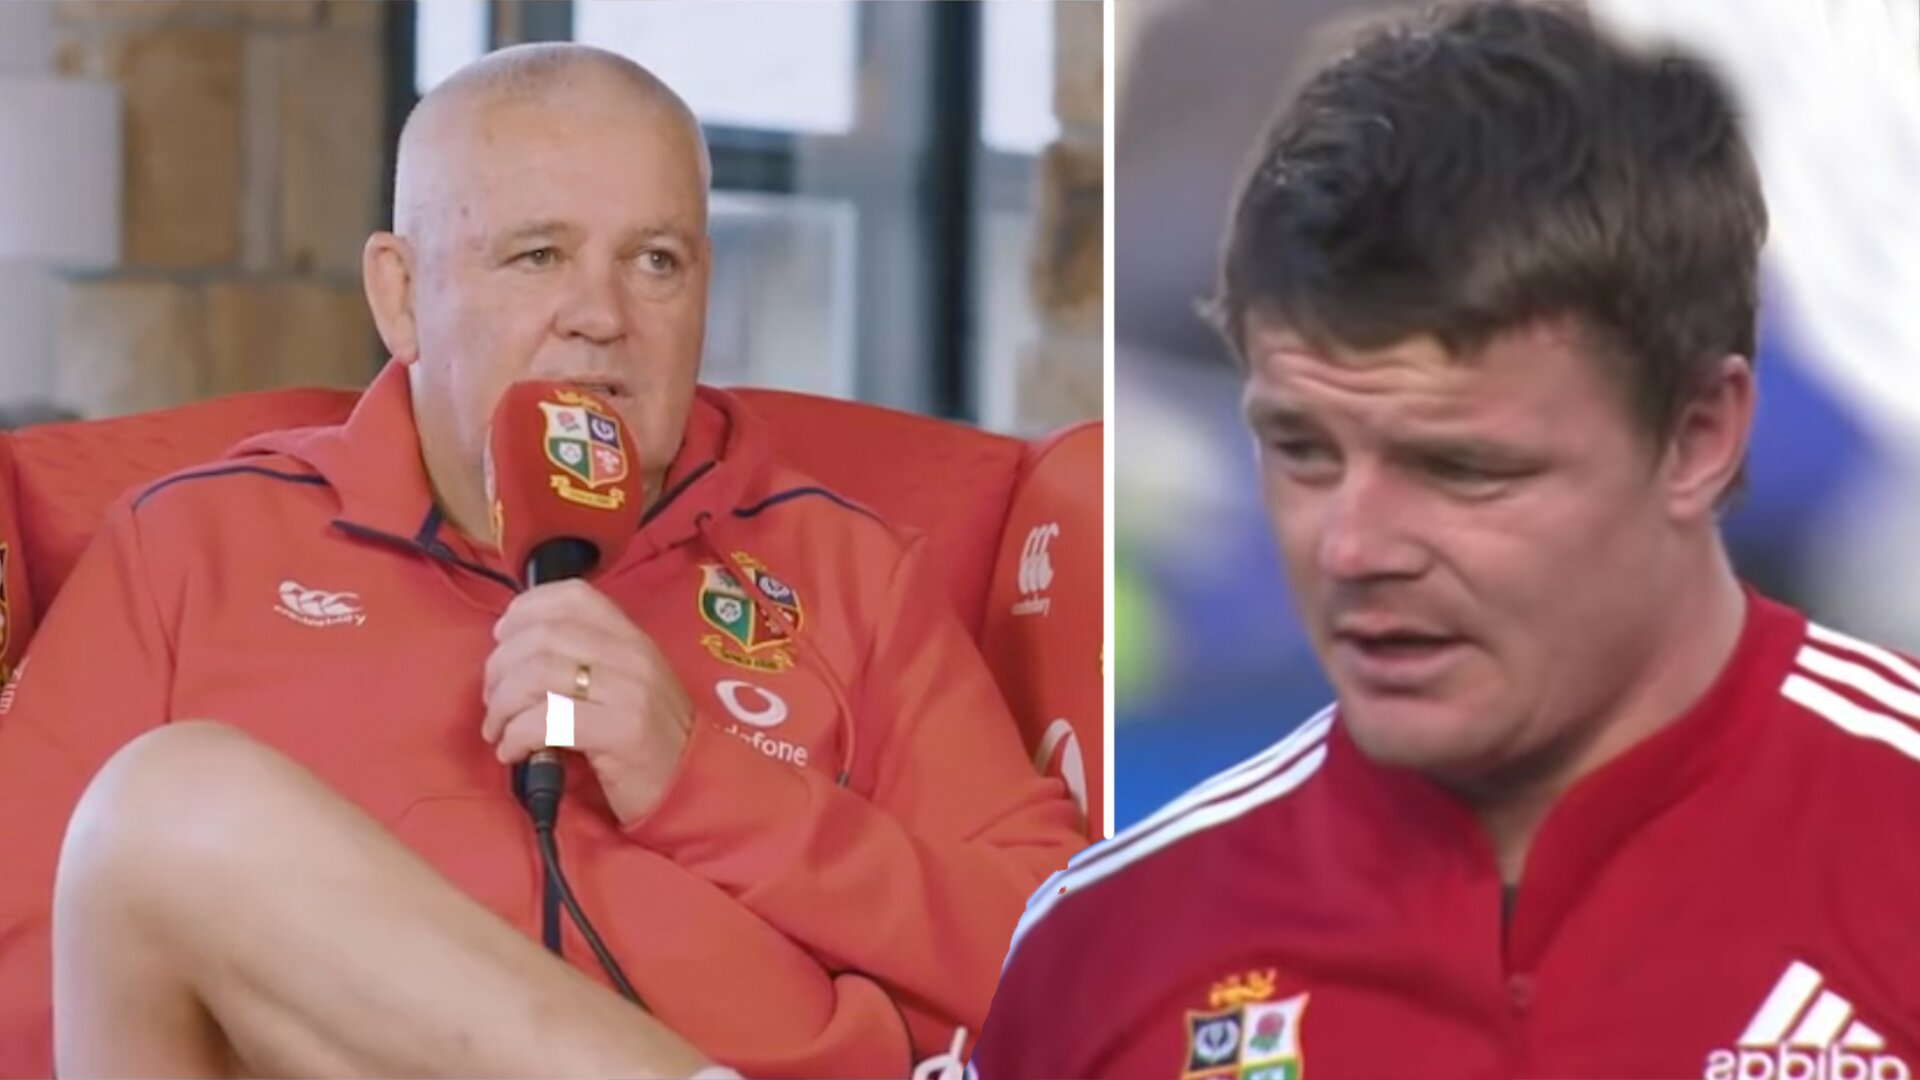 Lions fans stunned as Gatland talks about Brian O'Driscoll on eve of Lions test